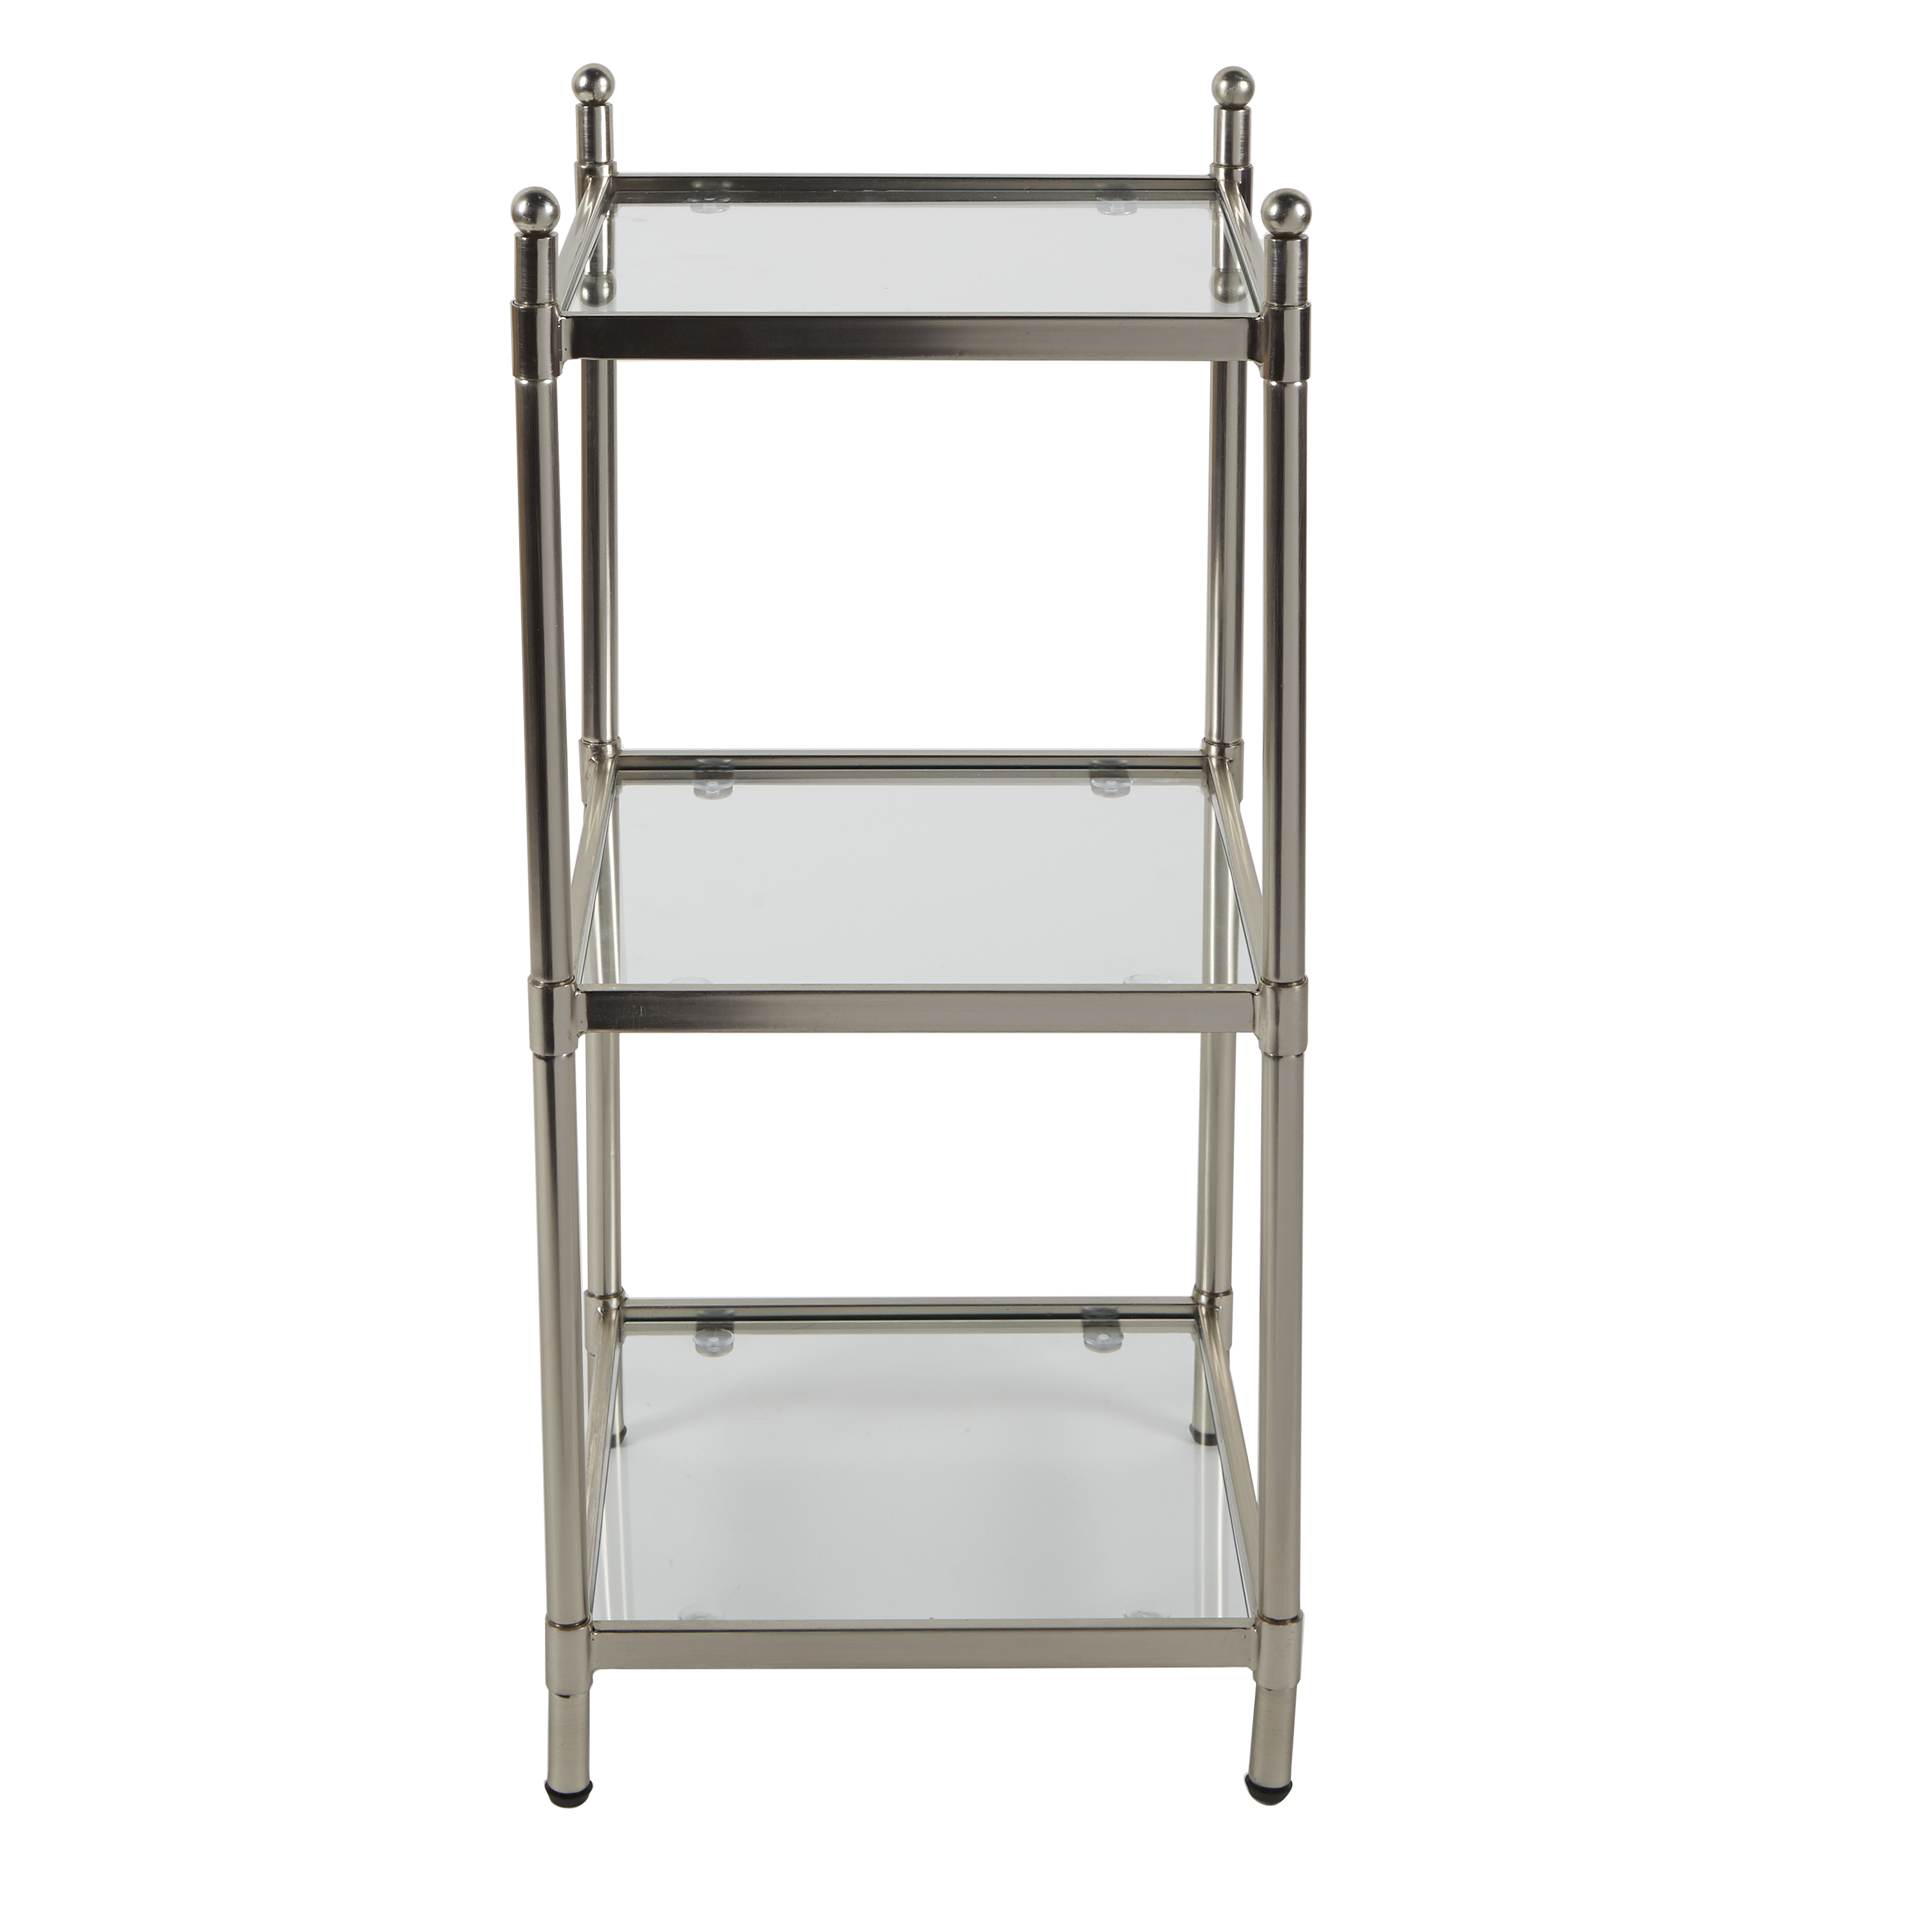 Better Homes Gardens Silver Metal Etagere 3 Tier Bathroom Floor Shelf Walmart Com